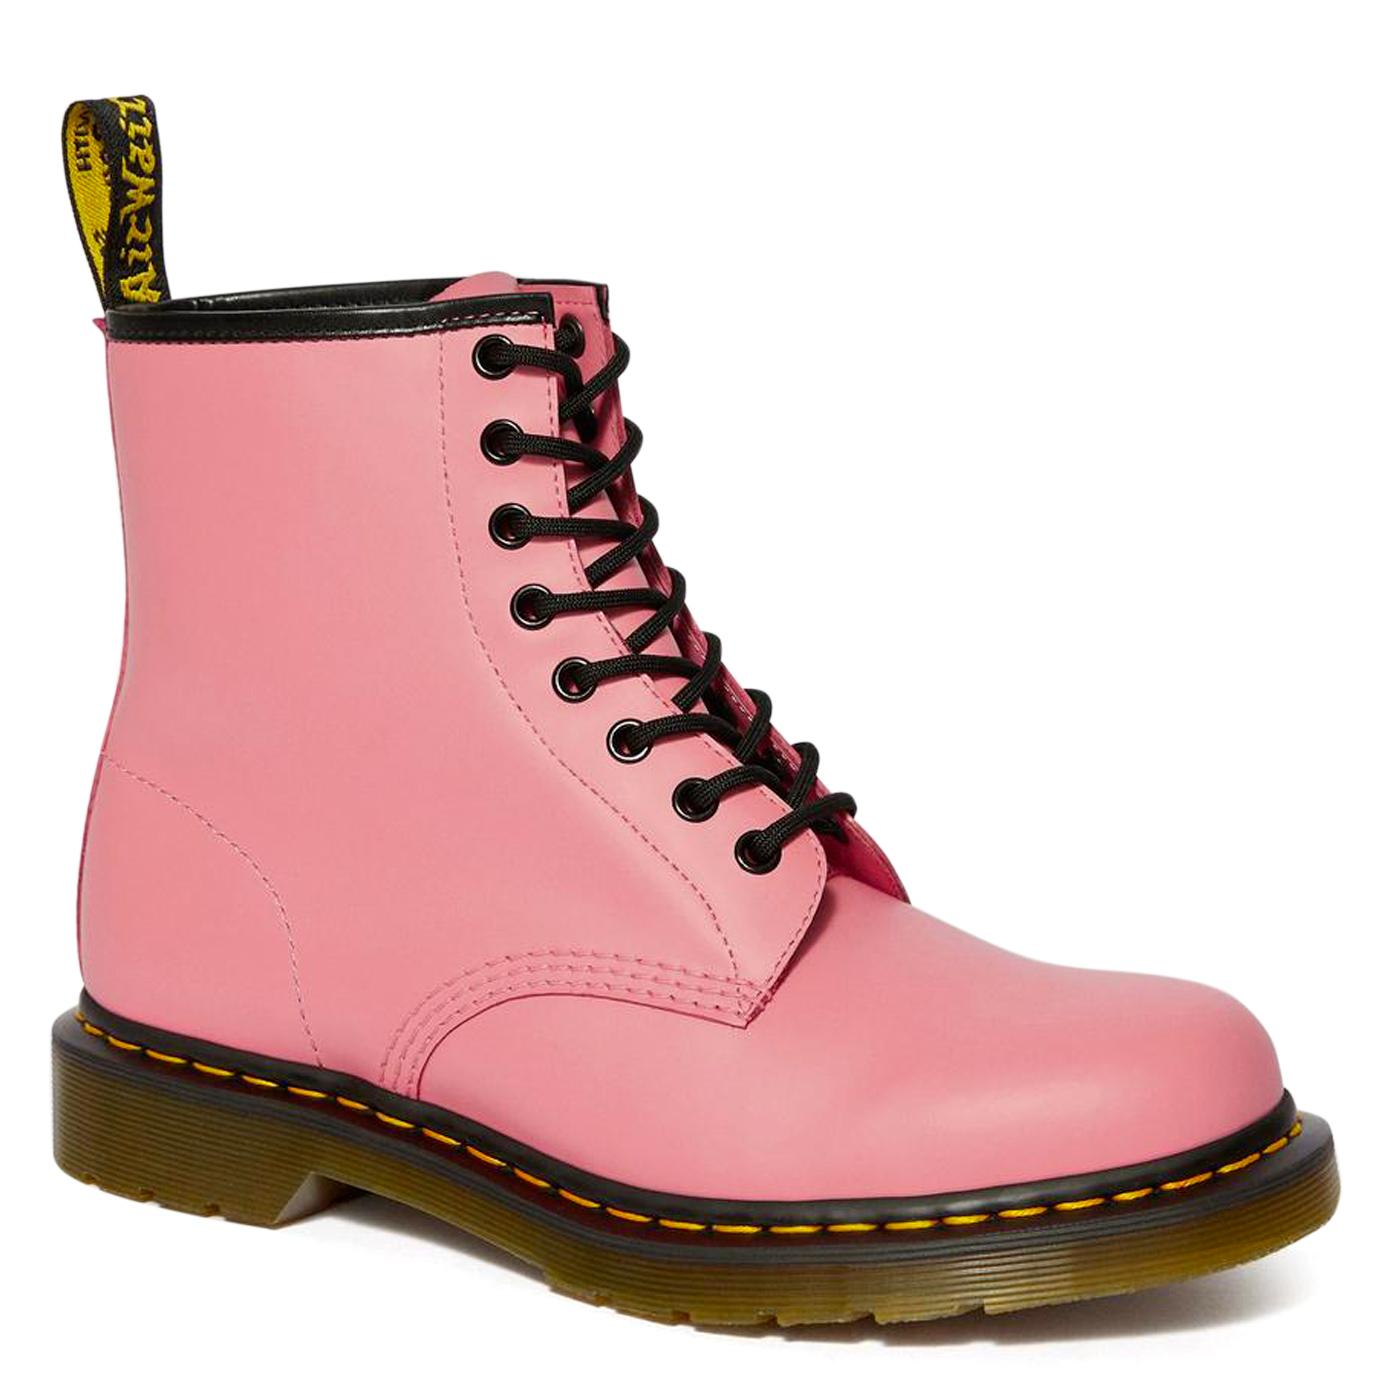 1460 DR MARTENS Retro Acid Pink Leather Ankle Boot